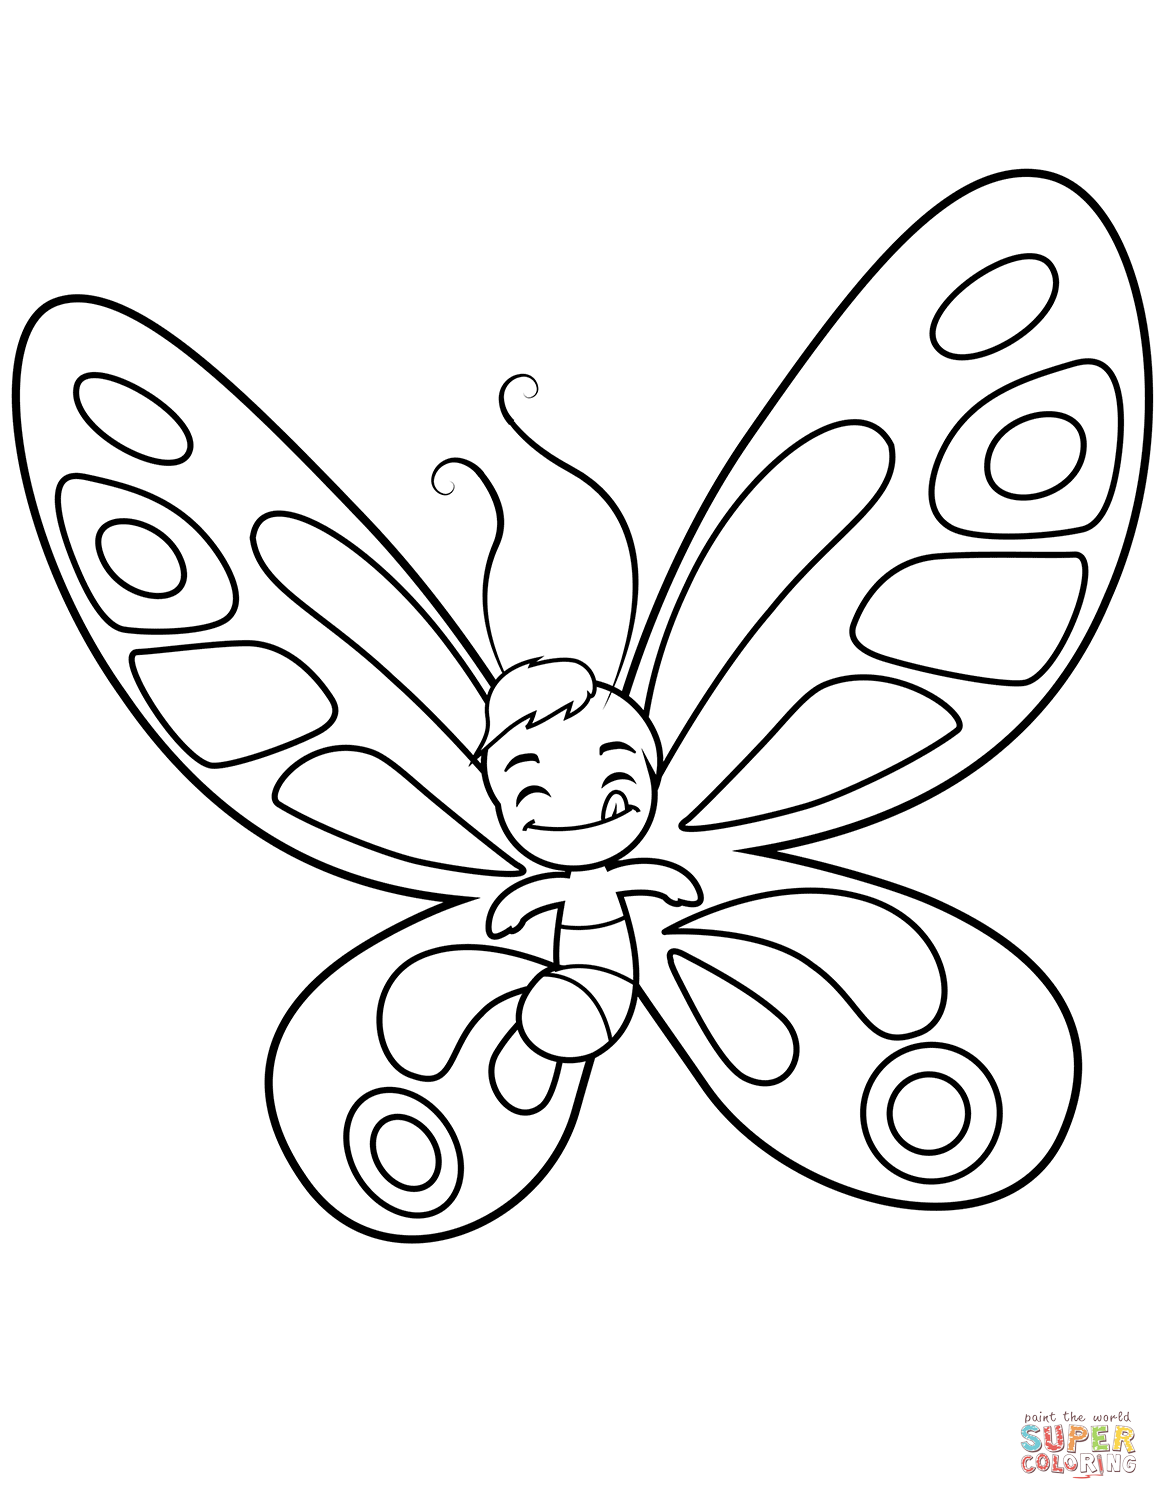 Cute Butterfly Boy Sticks Out The Tongue Coloring Page Free Printable Coloring Page Butterfly Coloring Page Butterfly Printable Free Printable Coloring Pages